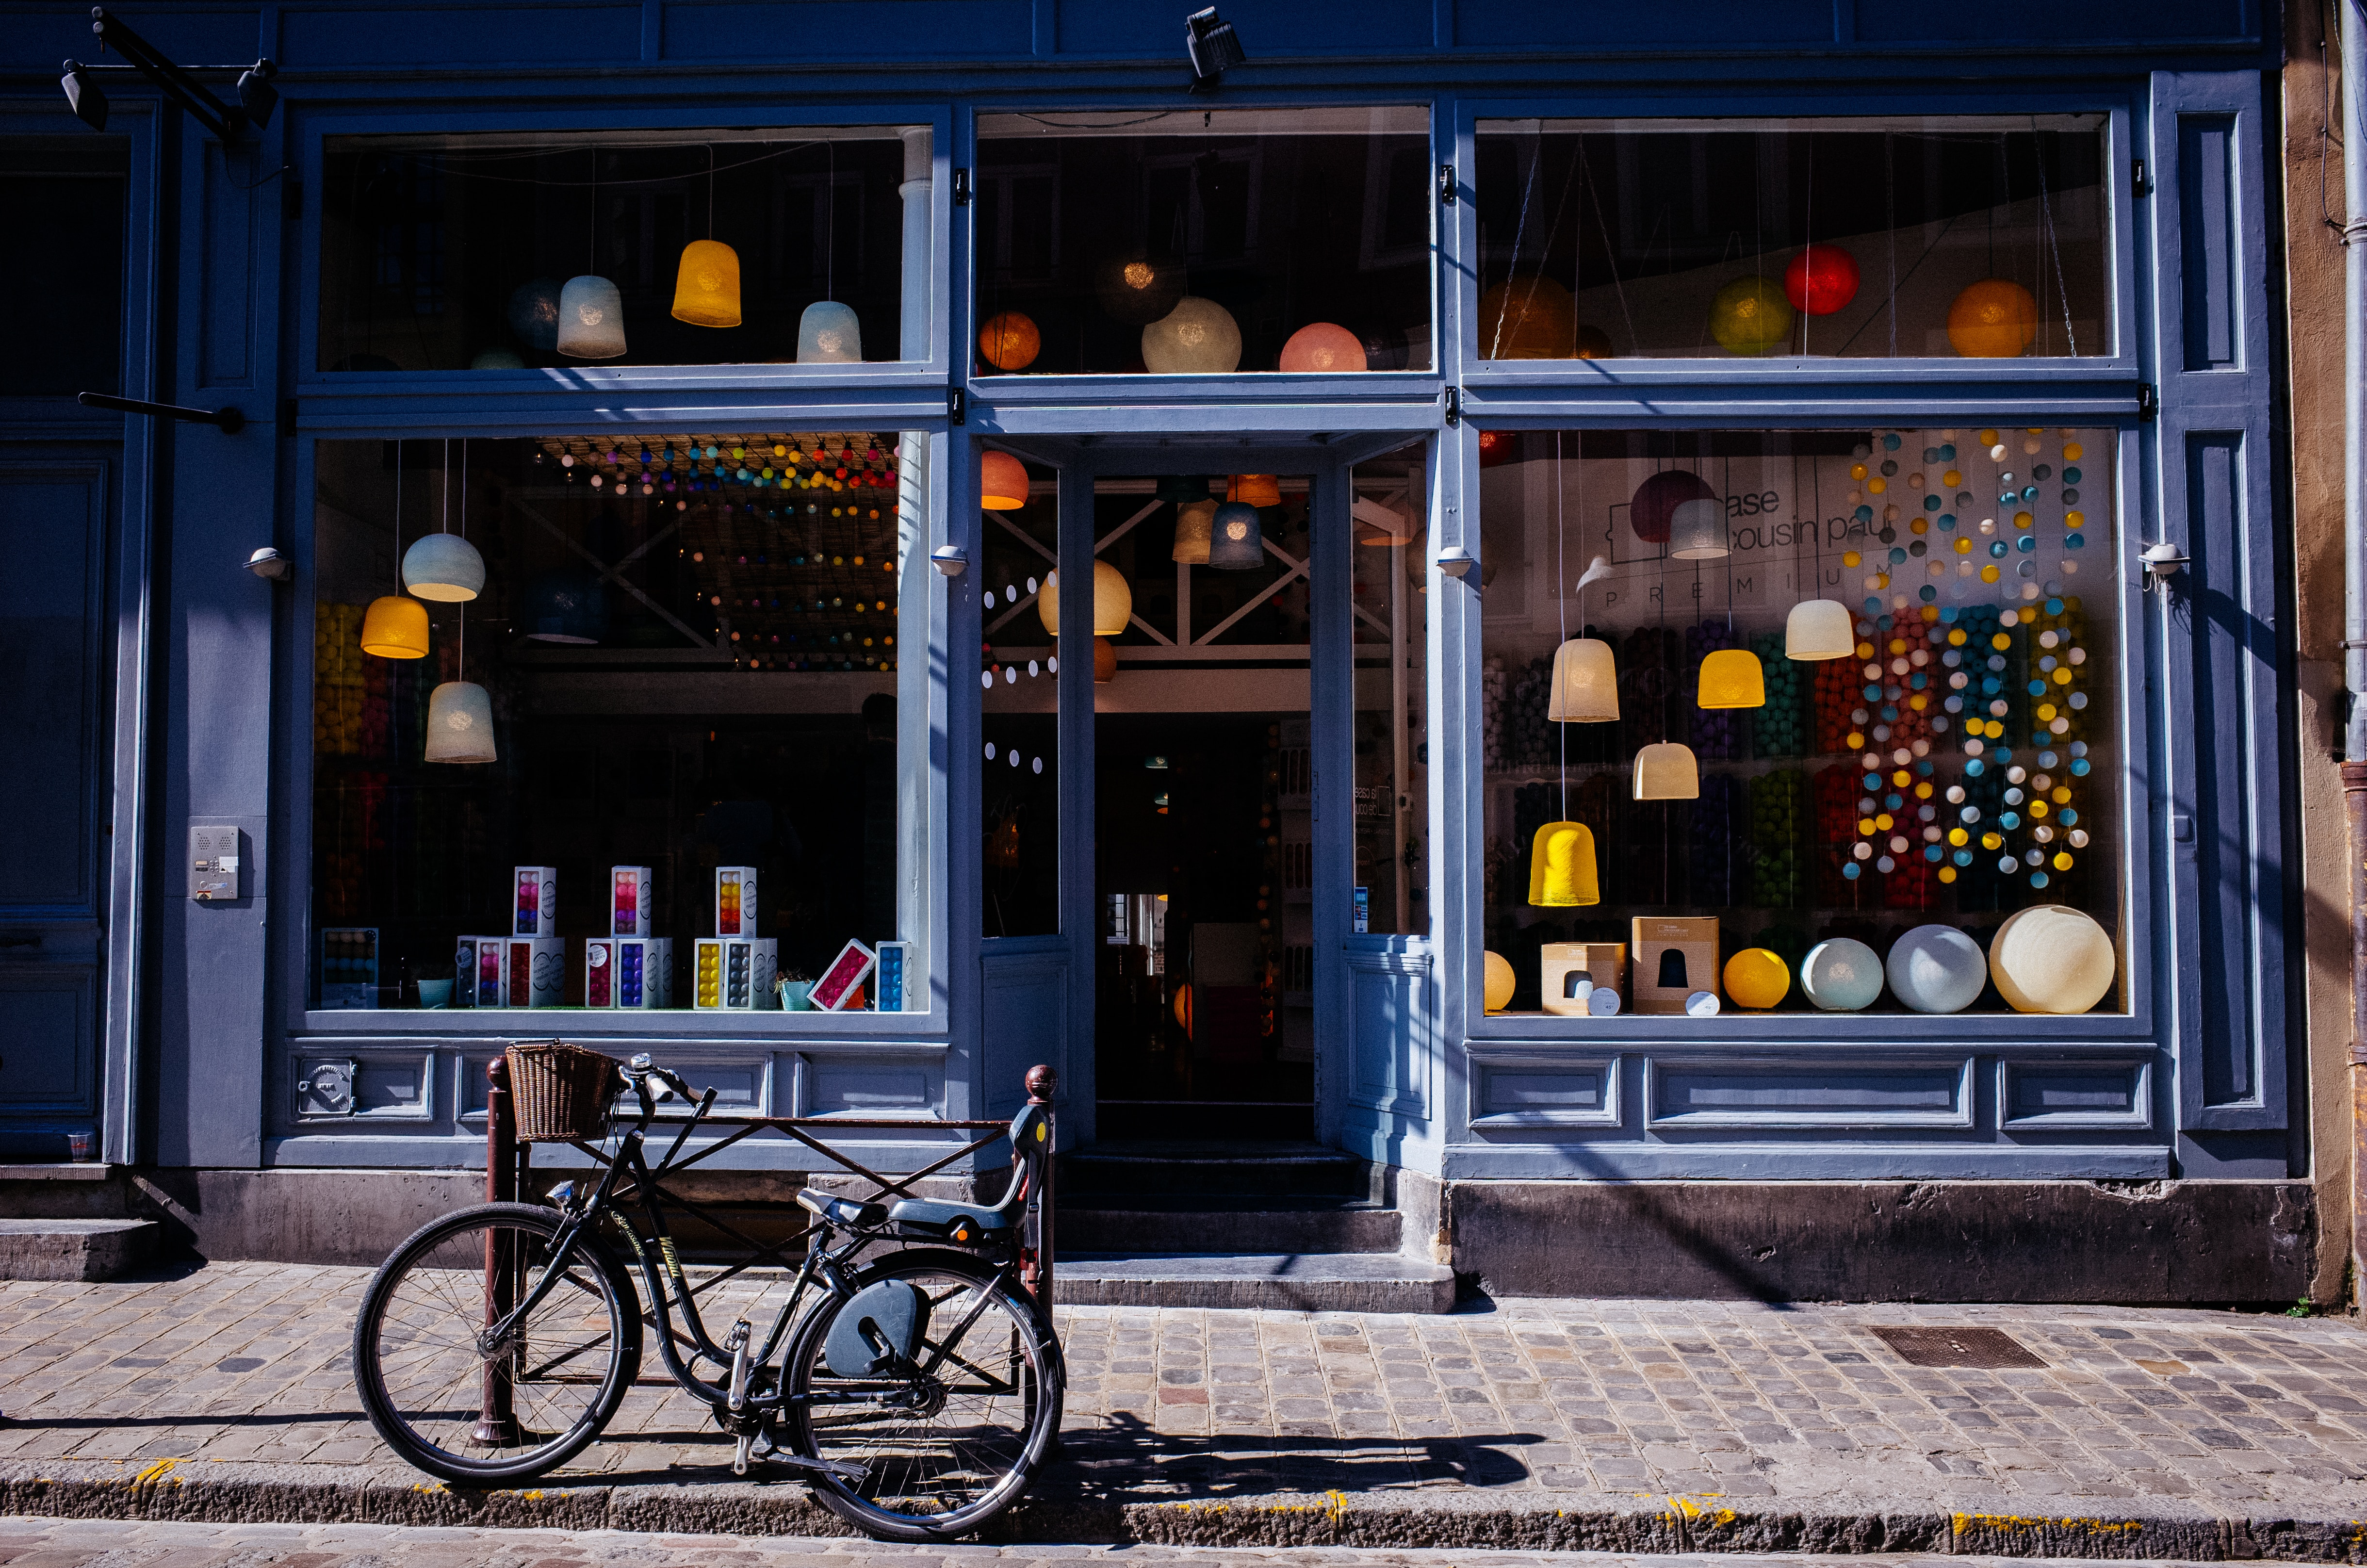 What Does it Mean to Be a Brick-and-Mortar Store?